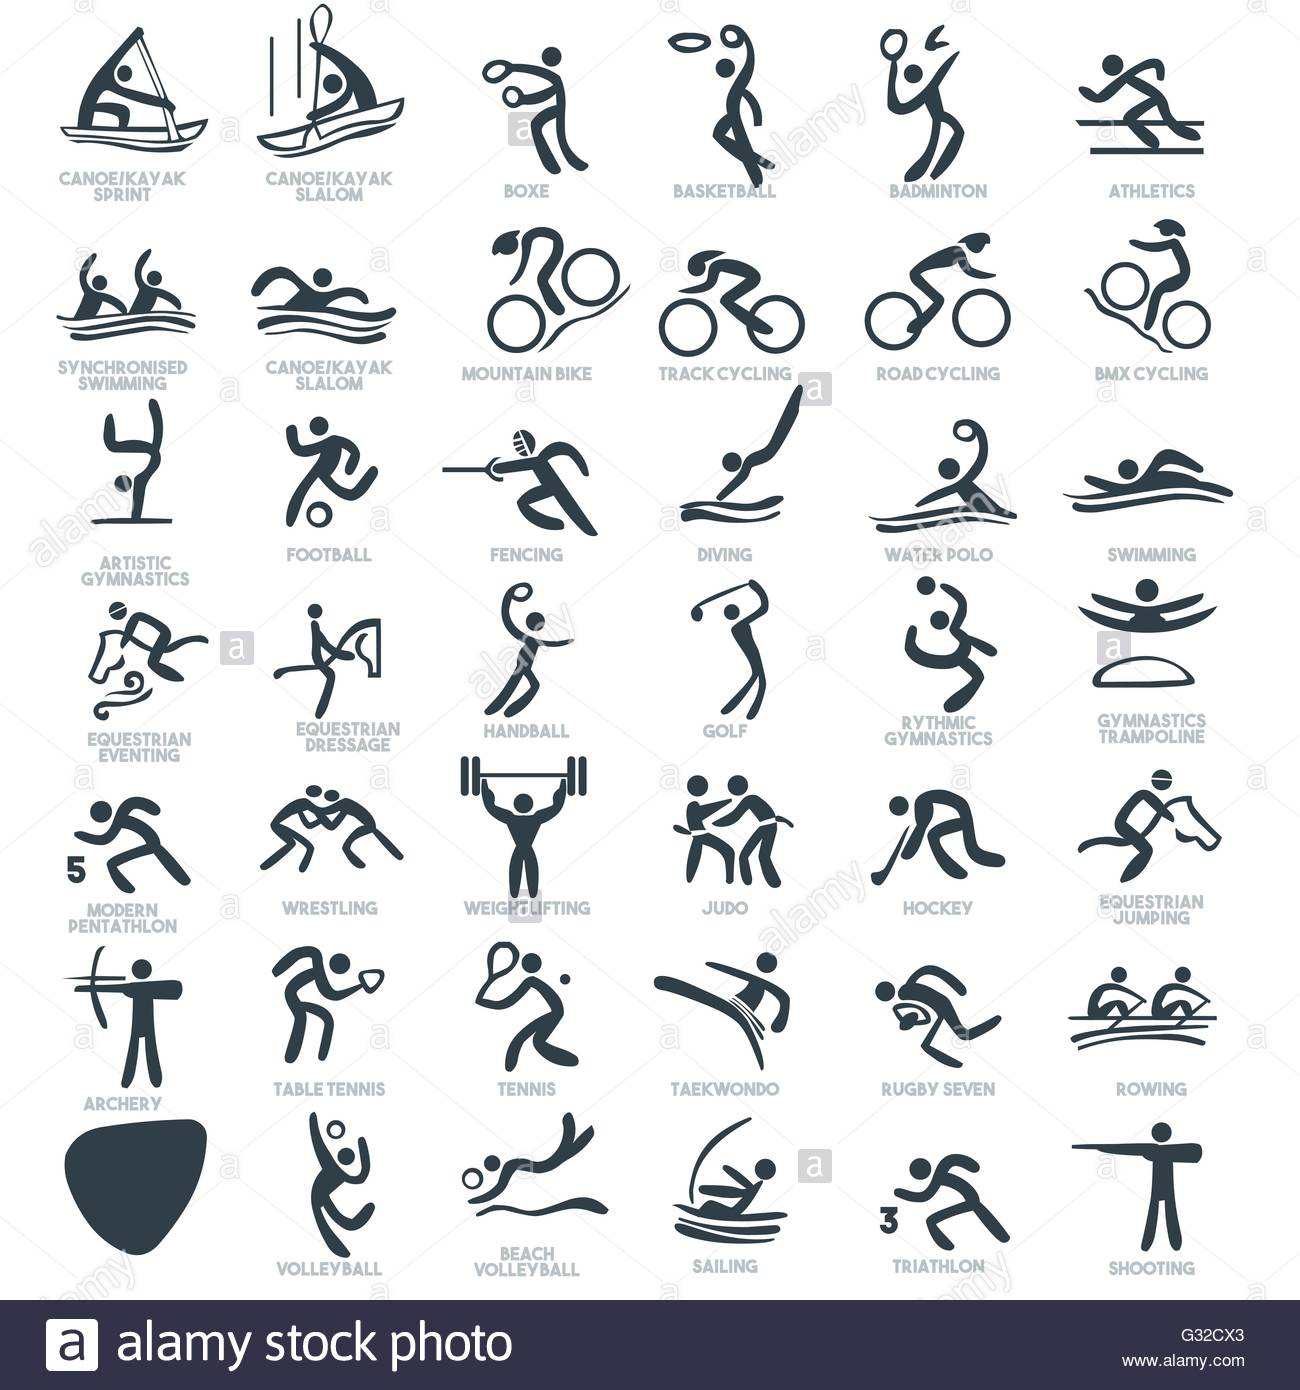 olympics summer games sport icon pictograms flat concept design set rh alamy com Sticks Figures Animals Clips Arts PowerPoint Stick Figure Animation